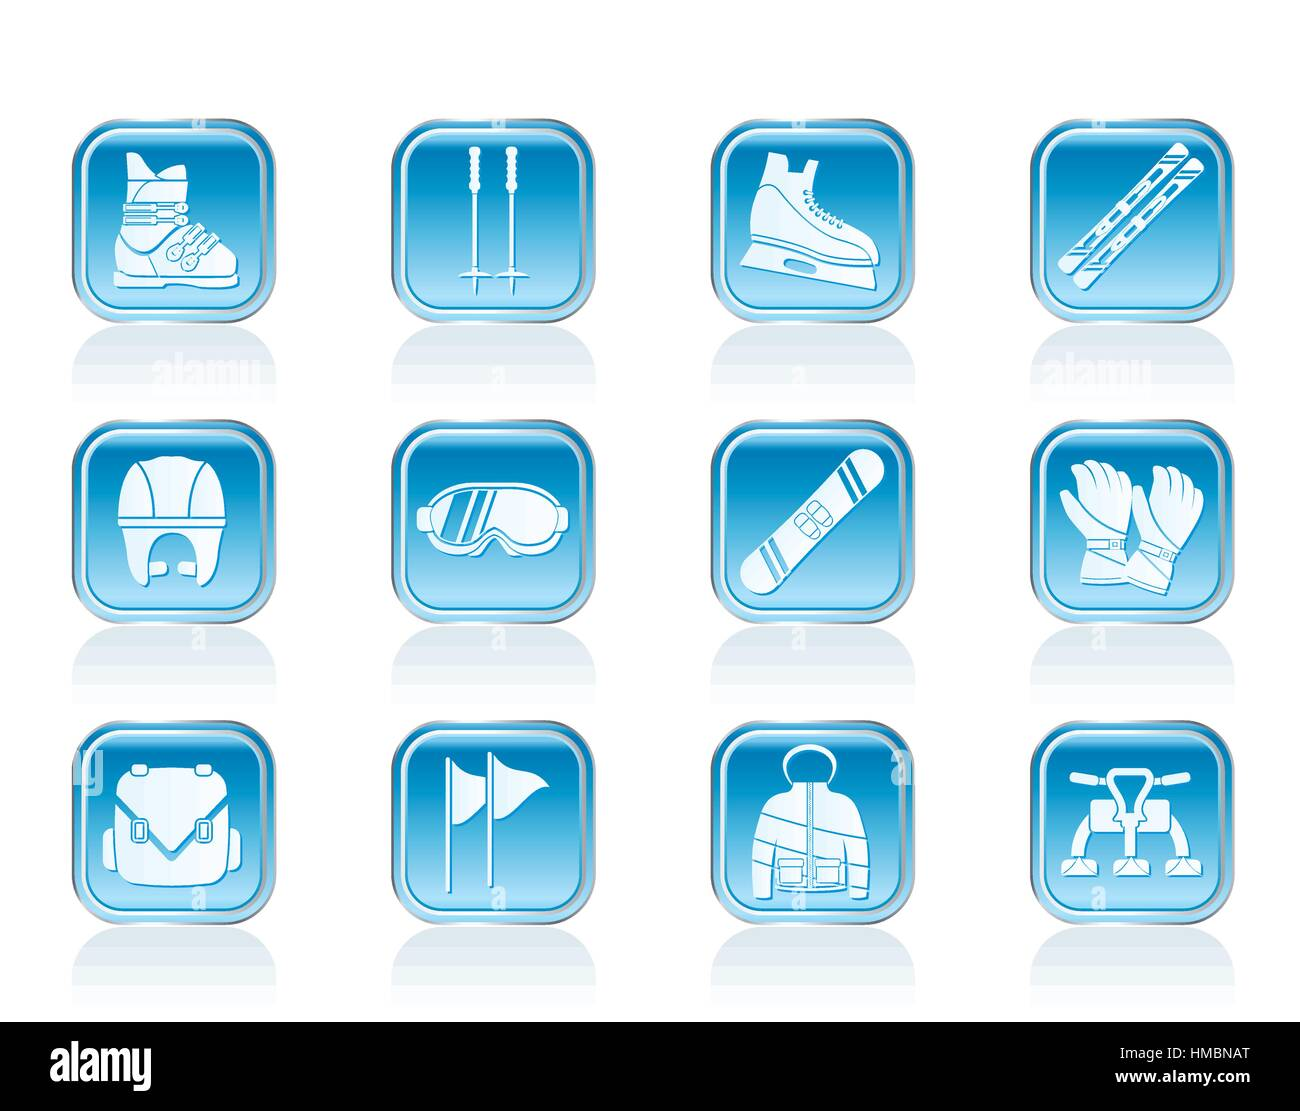 ski and snowboard equipment icons - Stock Image